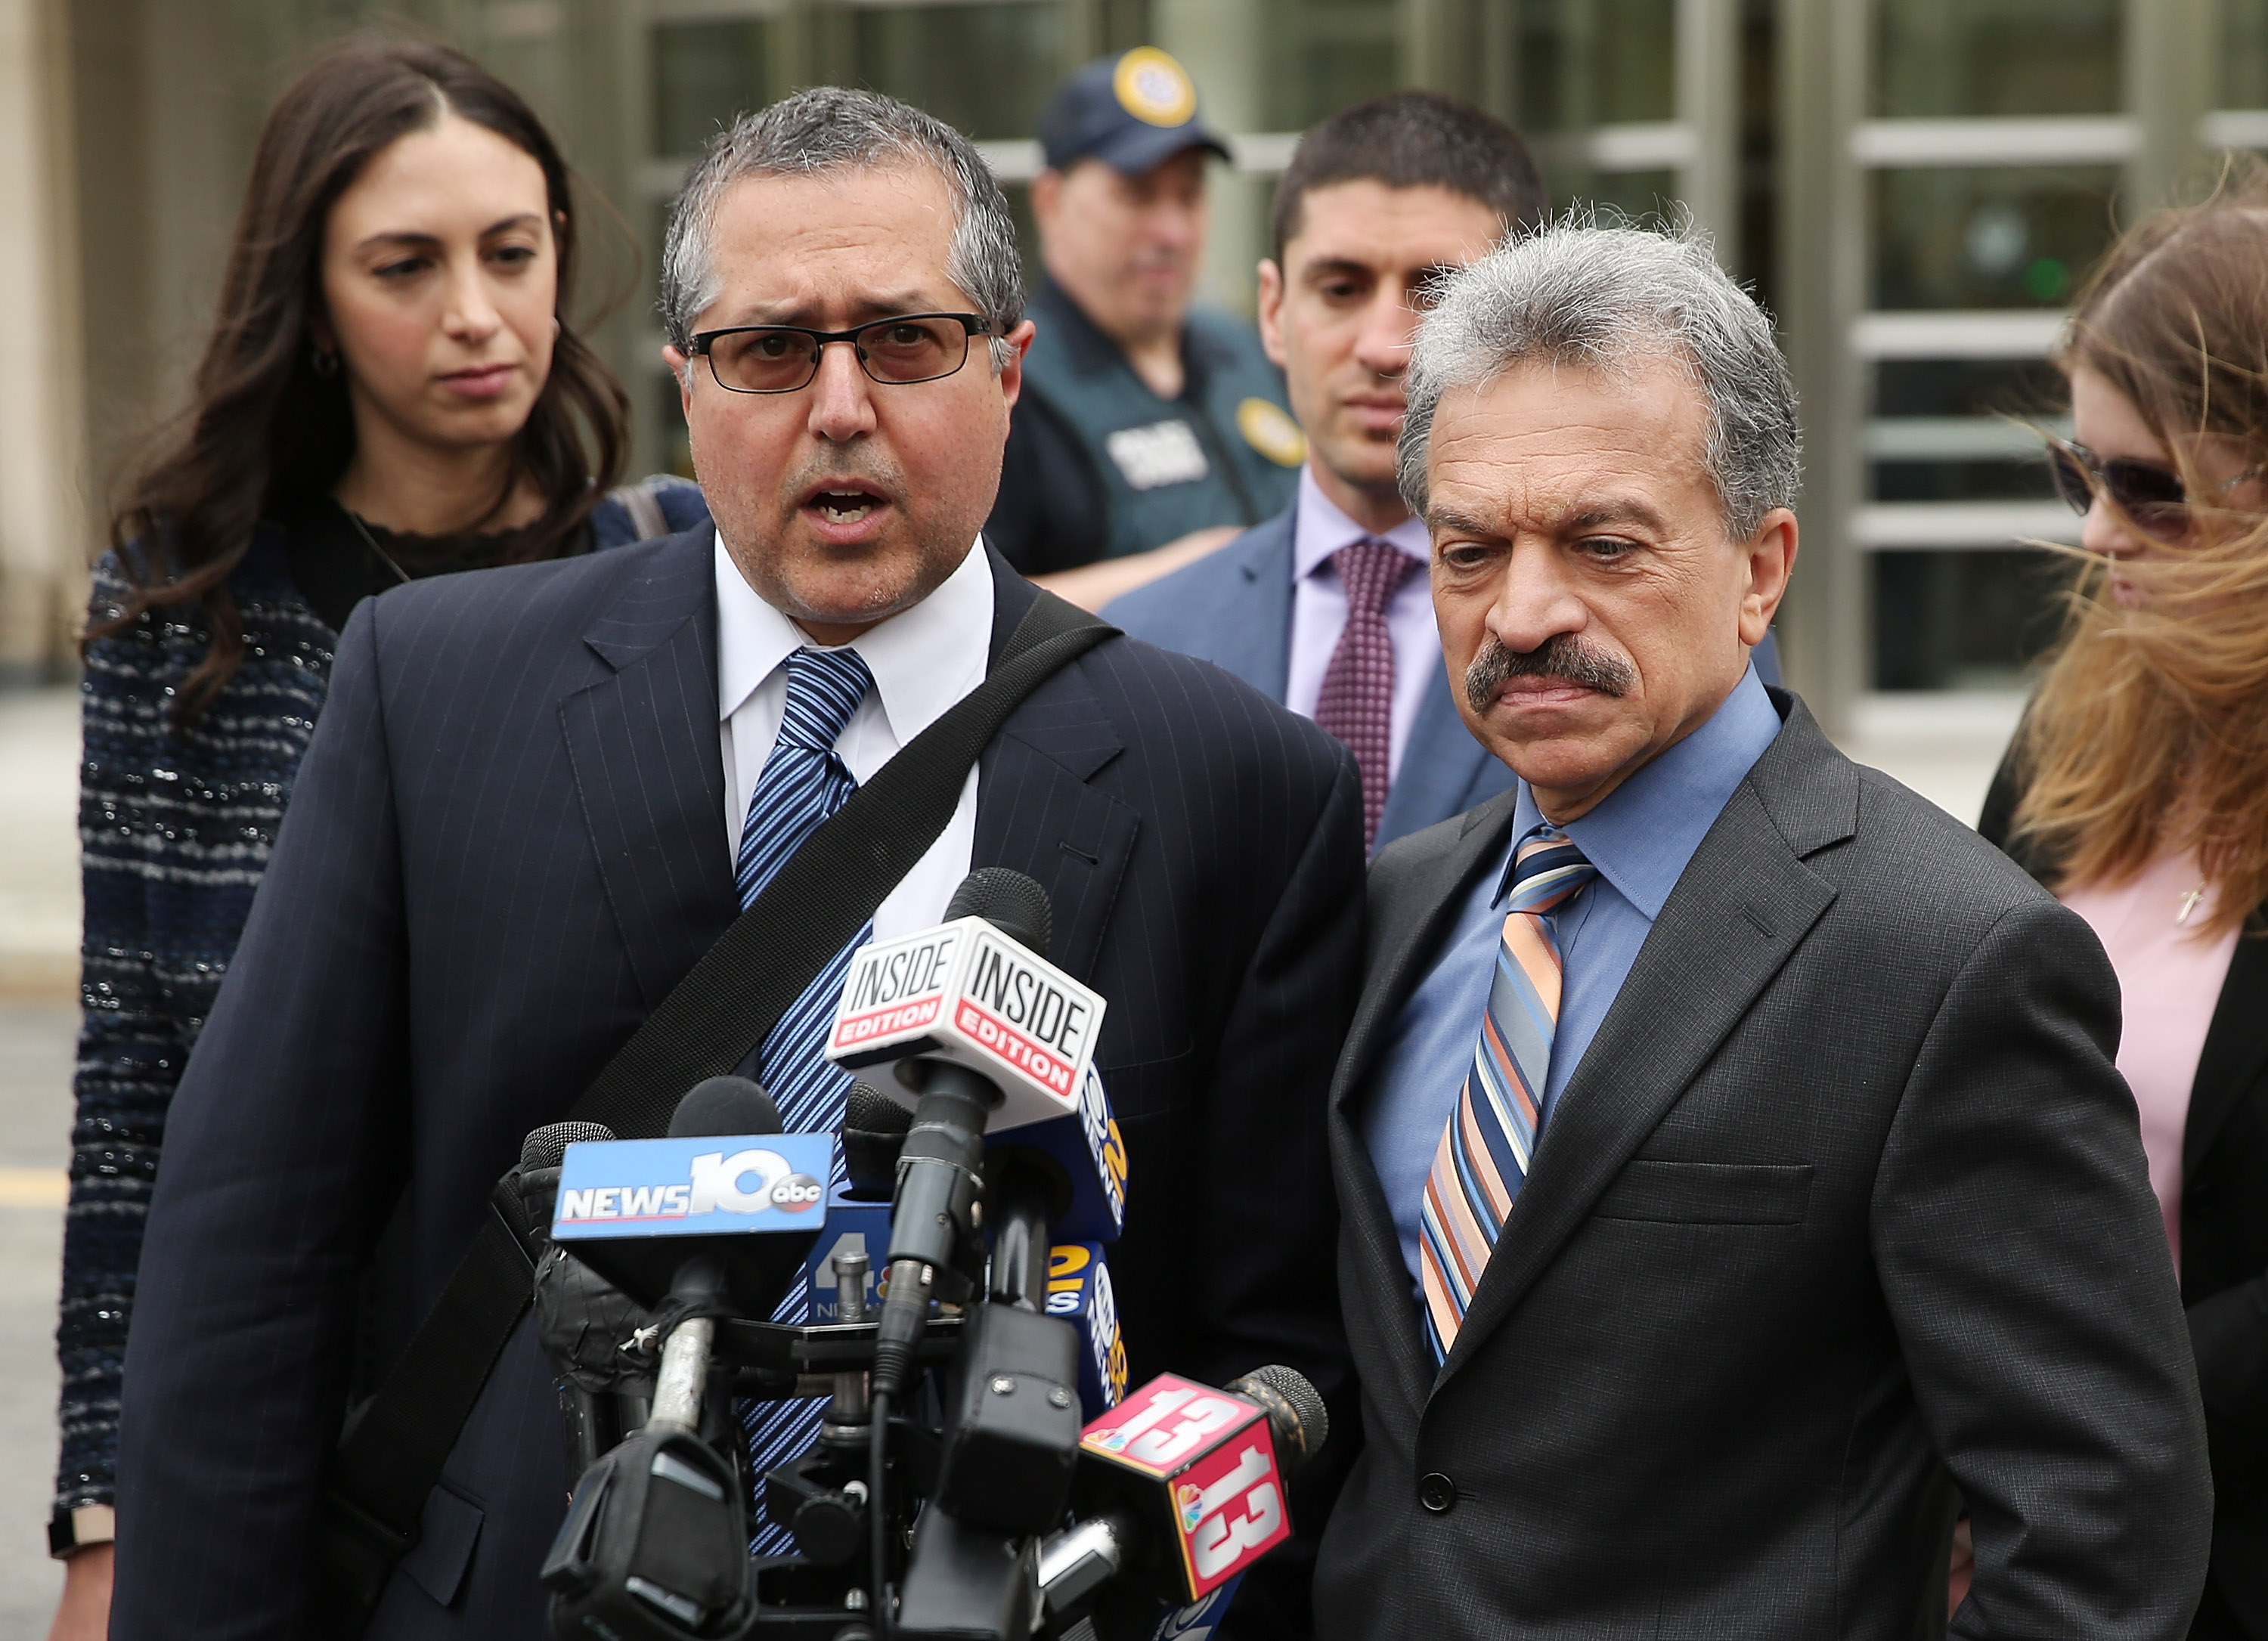 Legal Council representing Keith Raniere and the group NXIVM Mark Agnifilo and Paul DerOhannesian outside the United States Eastern District Court in Brooklyn, New York City